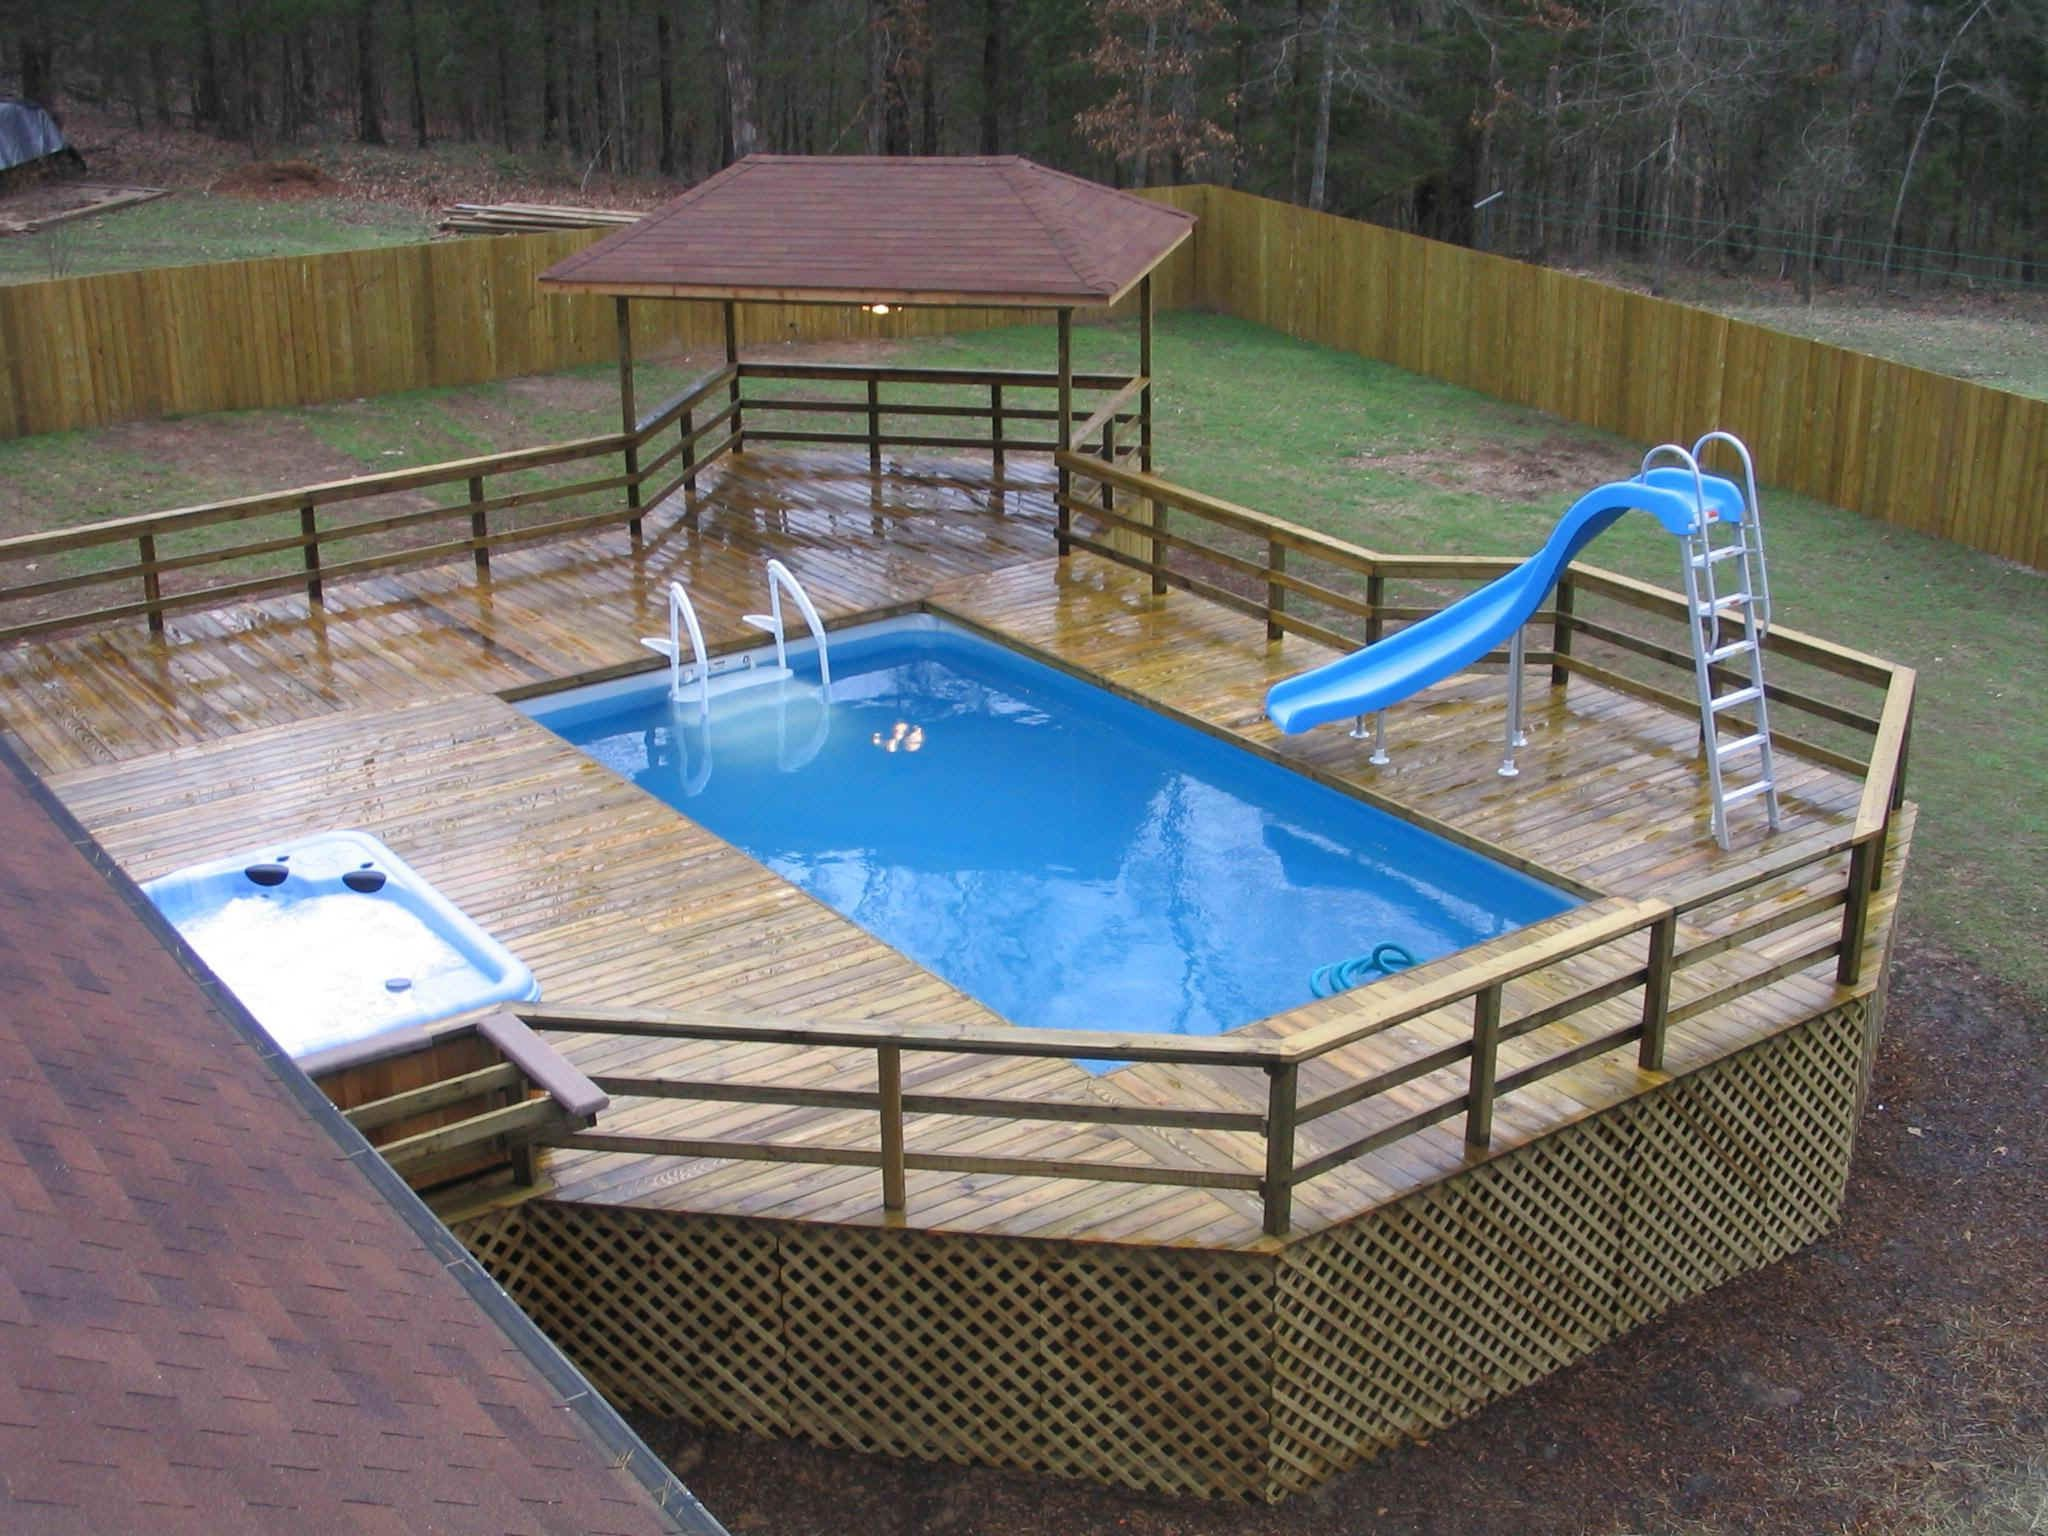 Above Ground Pool Decks Ideas above ground pools and decks pictures pool design ideas Find This Pin And More On Pools Decorating Nice Rectangle Above Ground Pool Deck Ideas